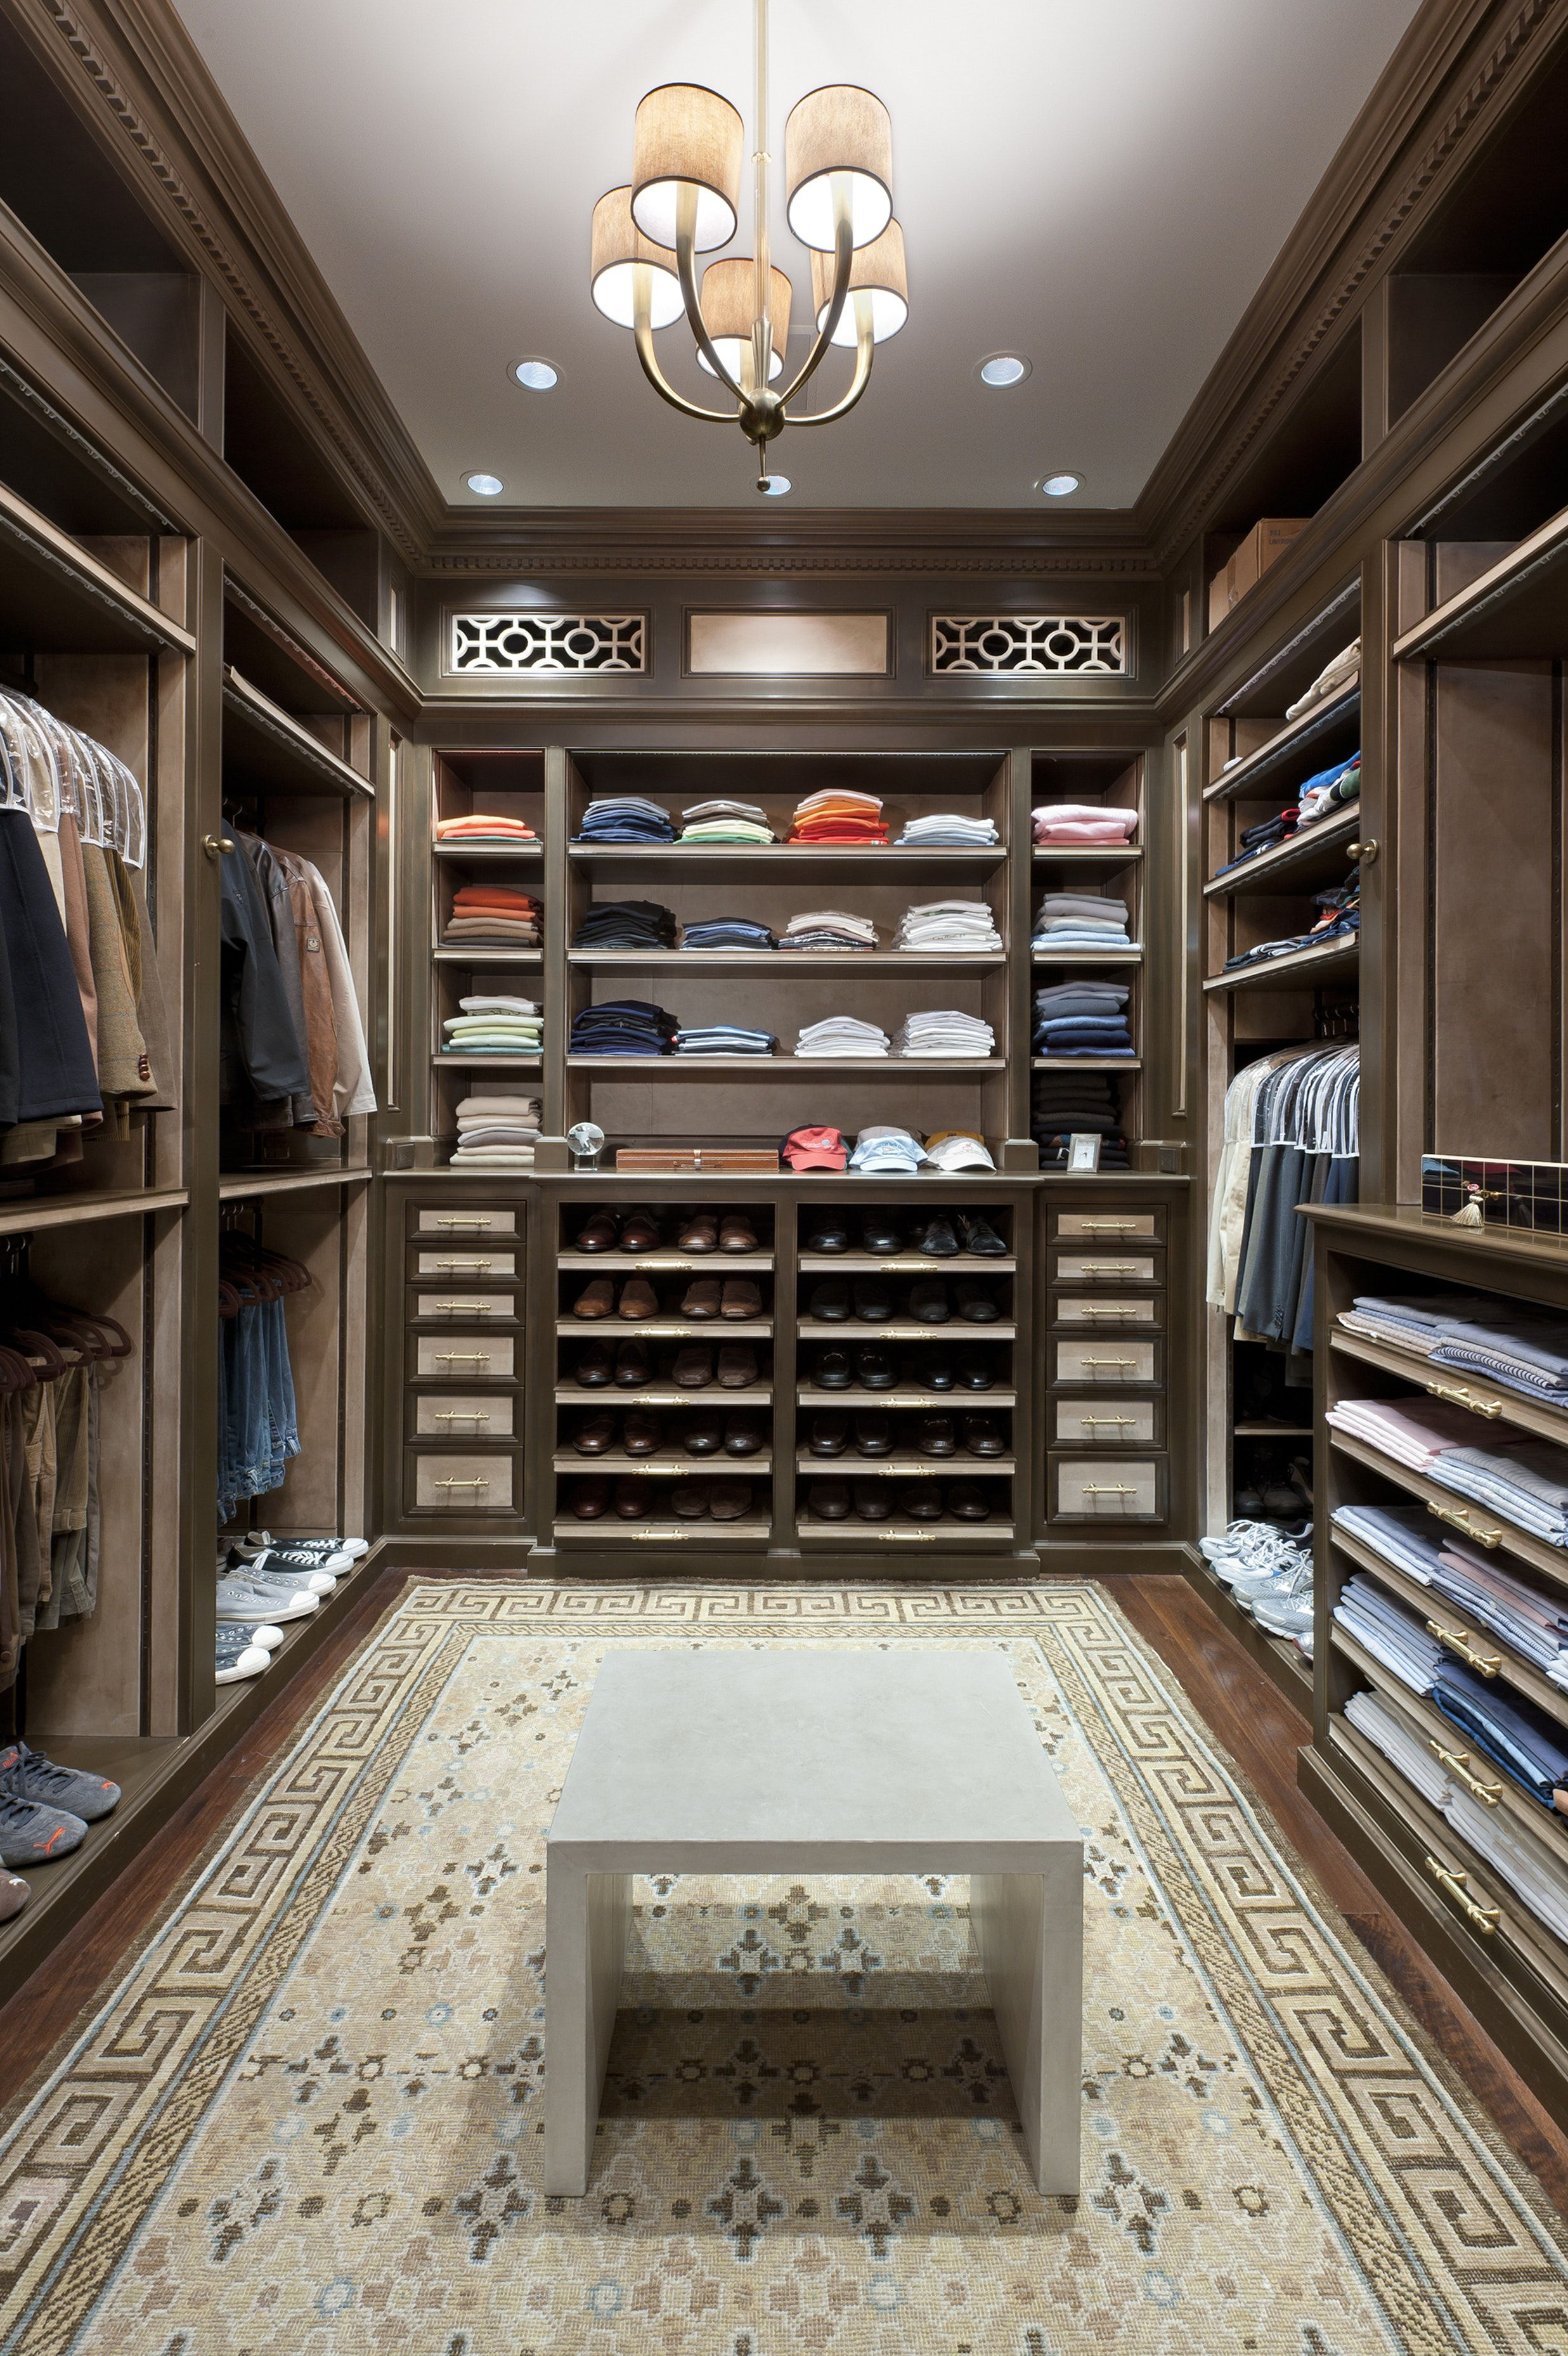 Interior Architecture Of Miami Indian Creek Home Featured In Architectural  Digest   His Closet